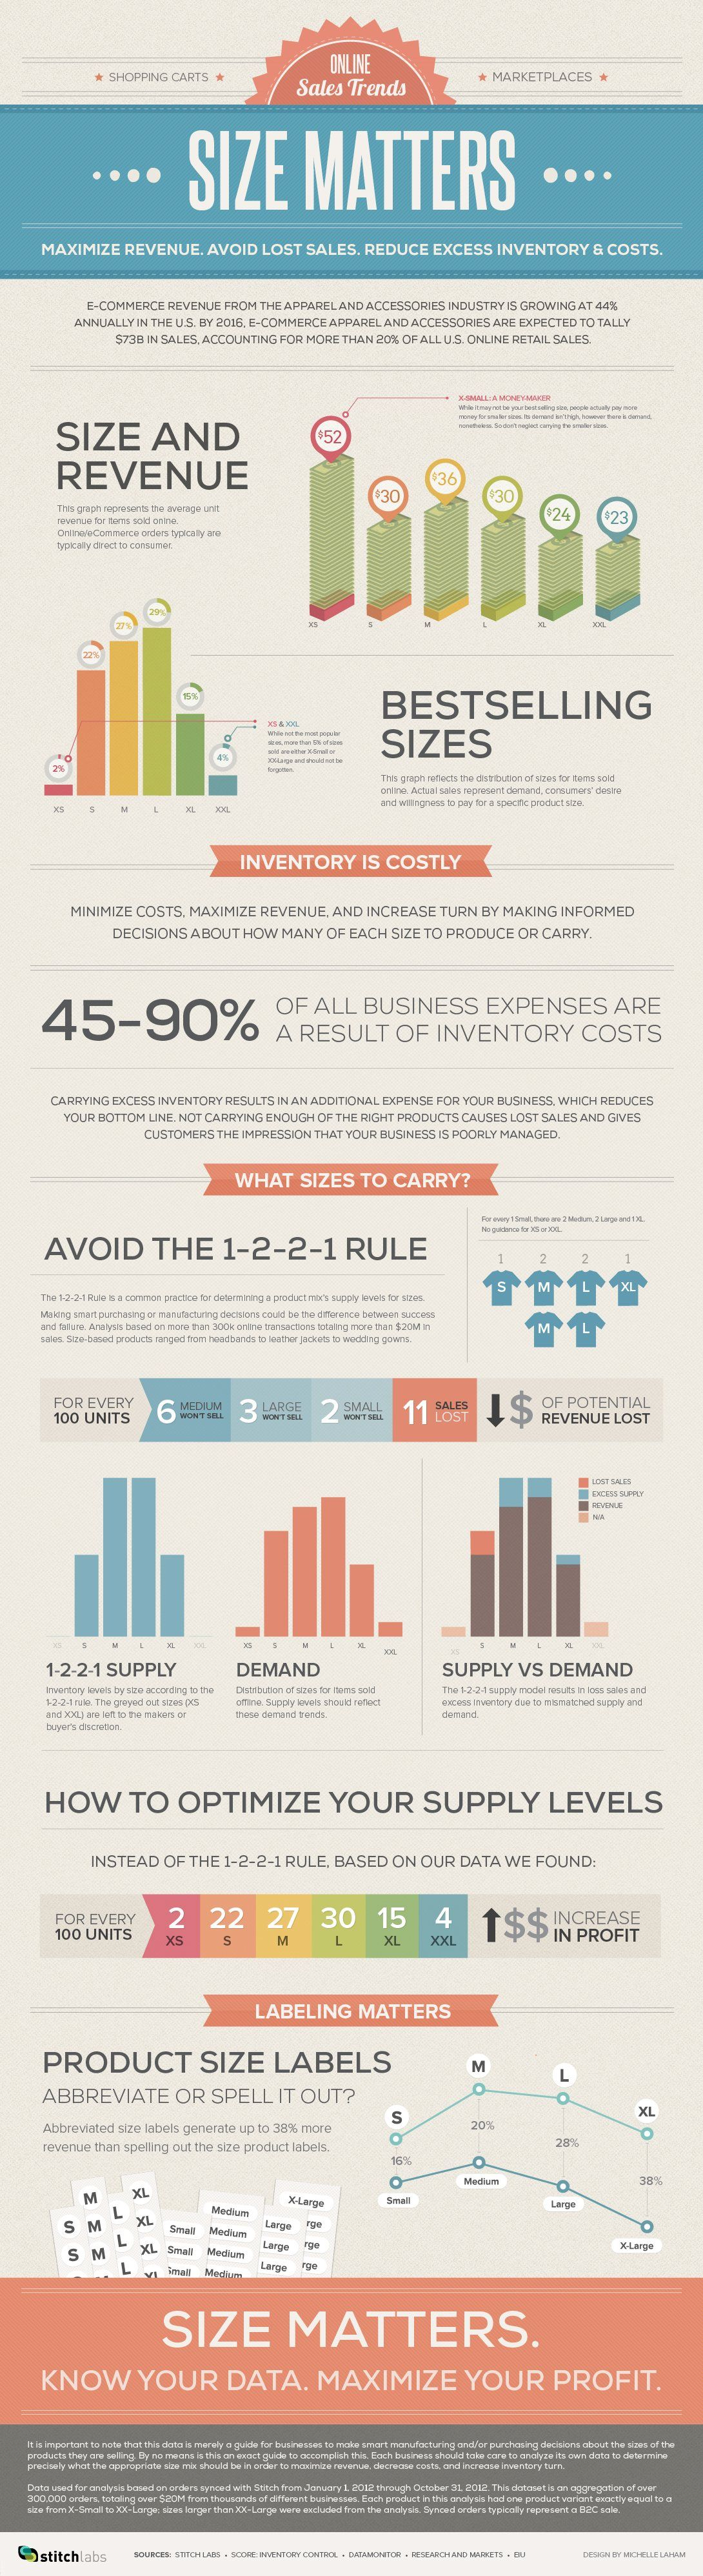 Big Data For Online Retailers Best Practices On Selling Sized Inventory Retail Marketing Retail Marketing Strategy Business Infographic